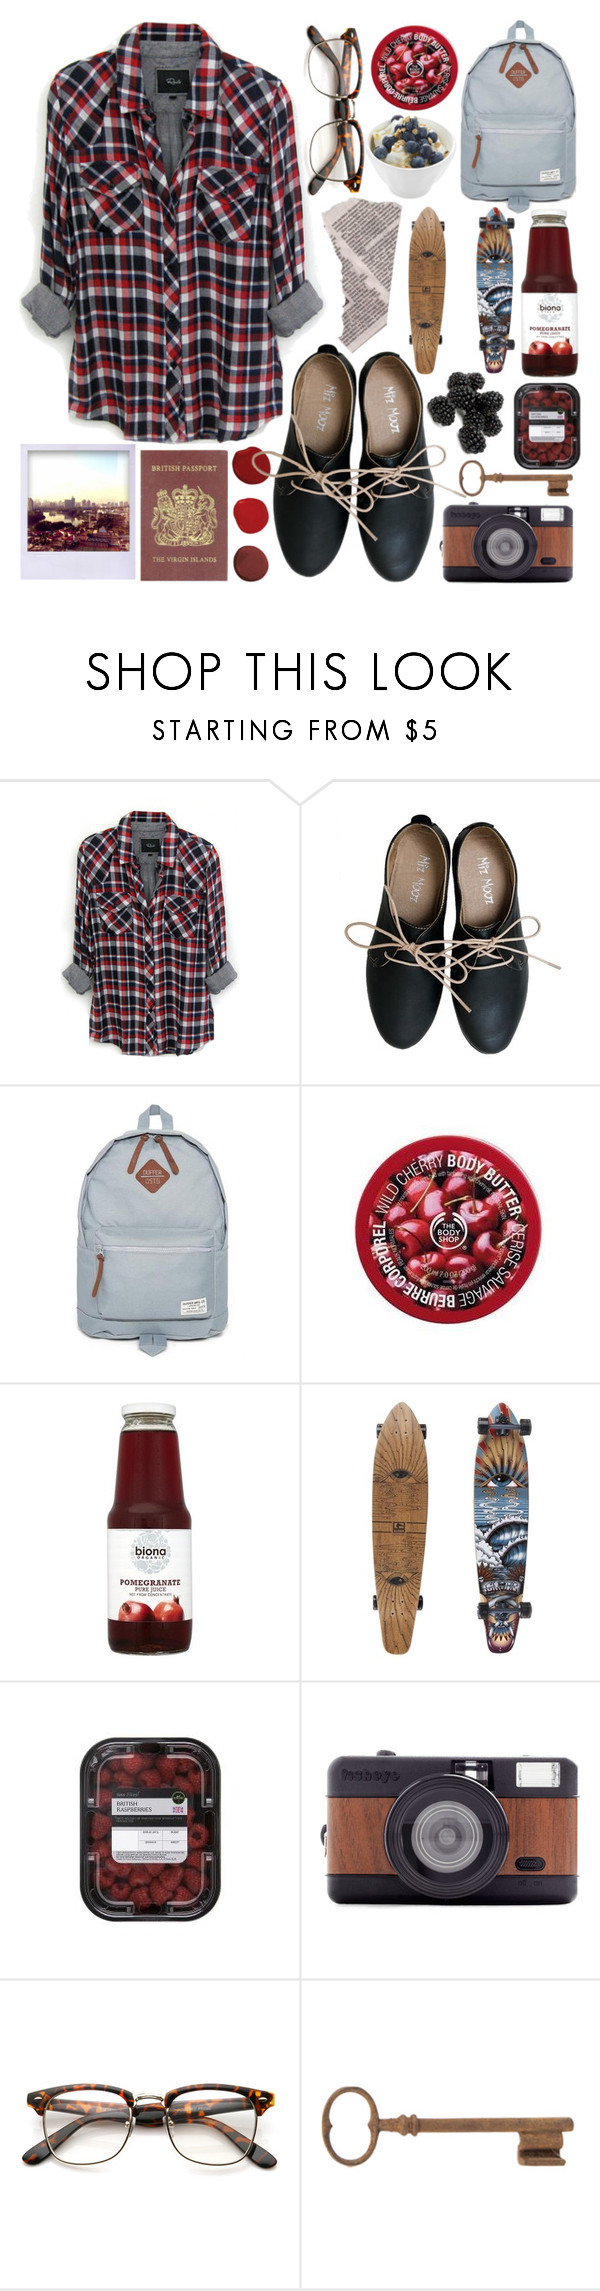 """I'm not excited, but should I be?"" by ftrees ❤ liked on Polyvore featuring Rails, Miz Mooz, Duffer Of St George, The Body Shop, Polaroid, Passport, Lomography and Jayson Home"